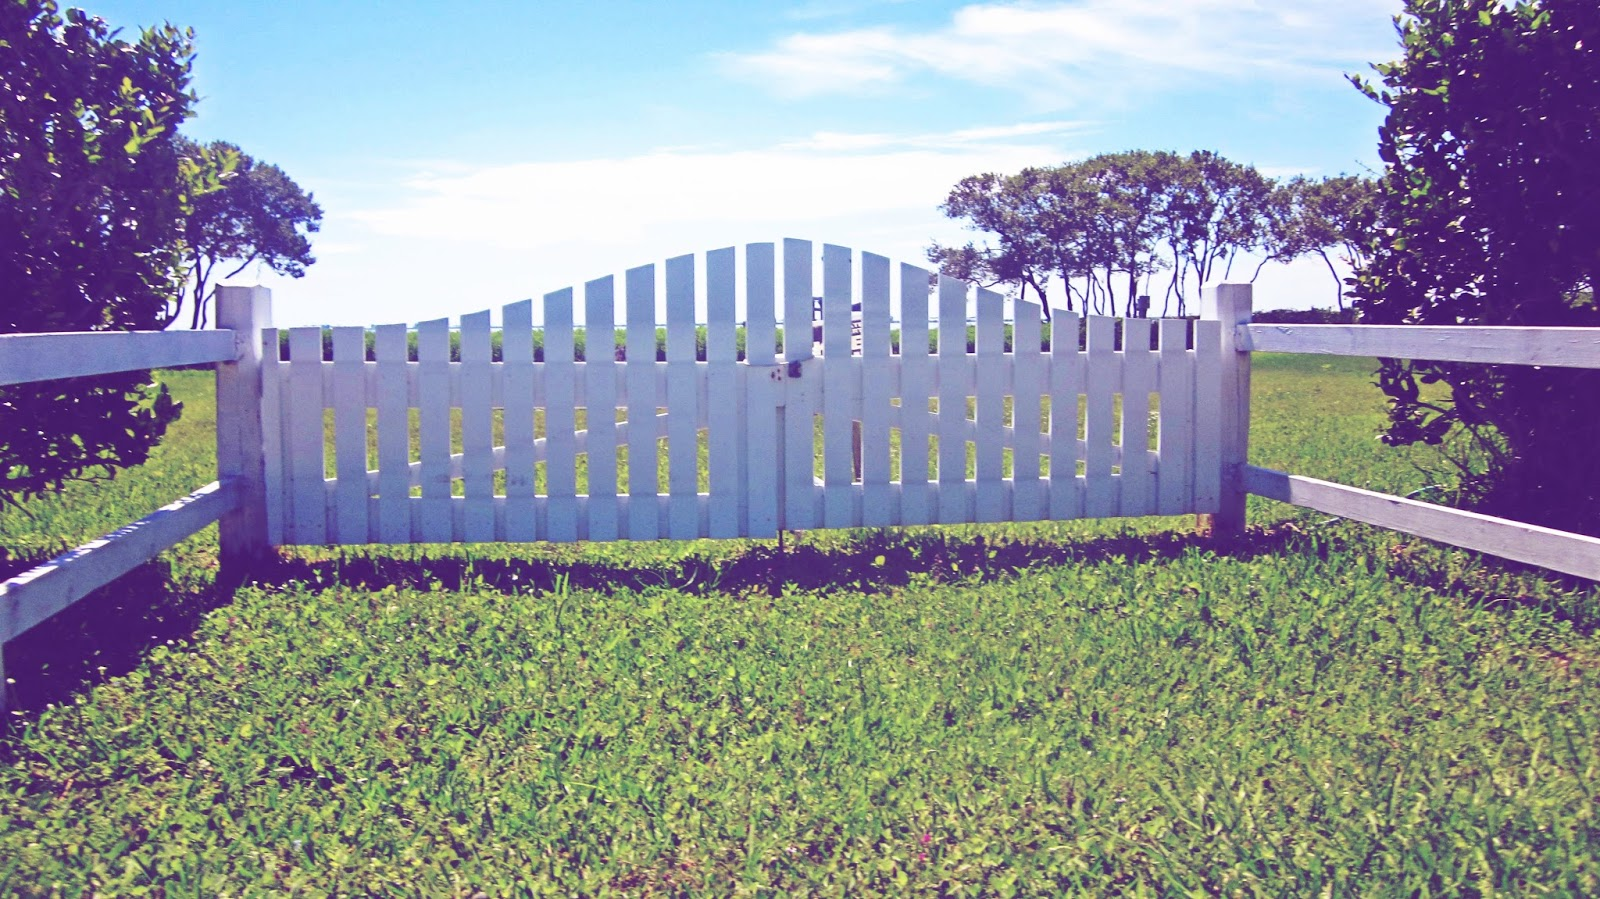 White picket fence backyard in Florida overlooking the ocean with trees